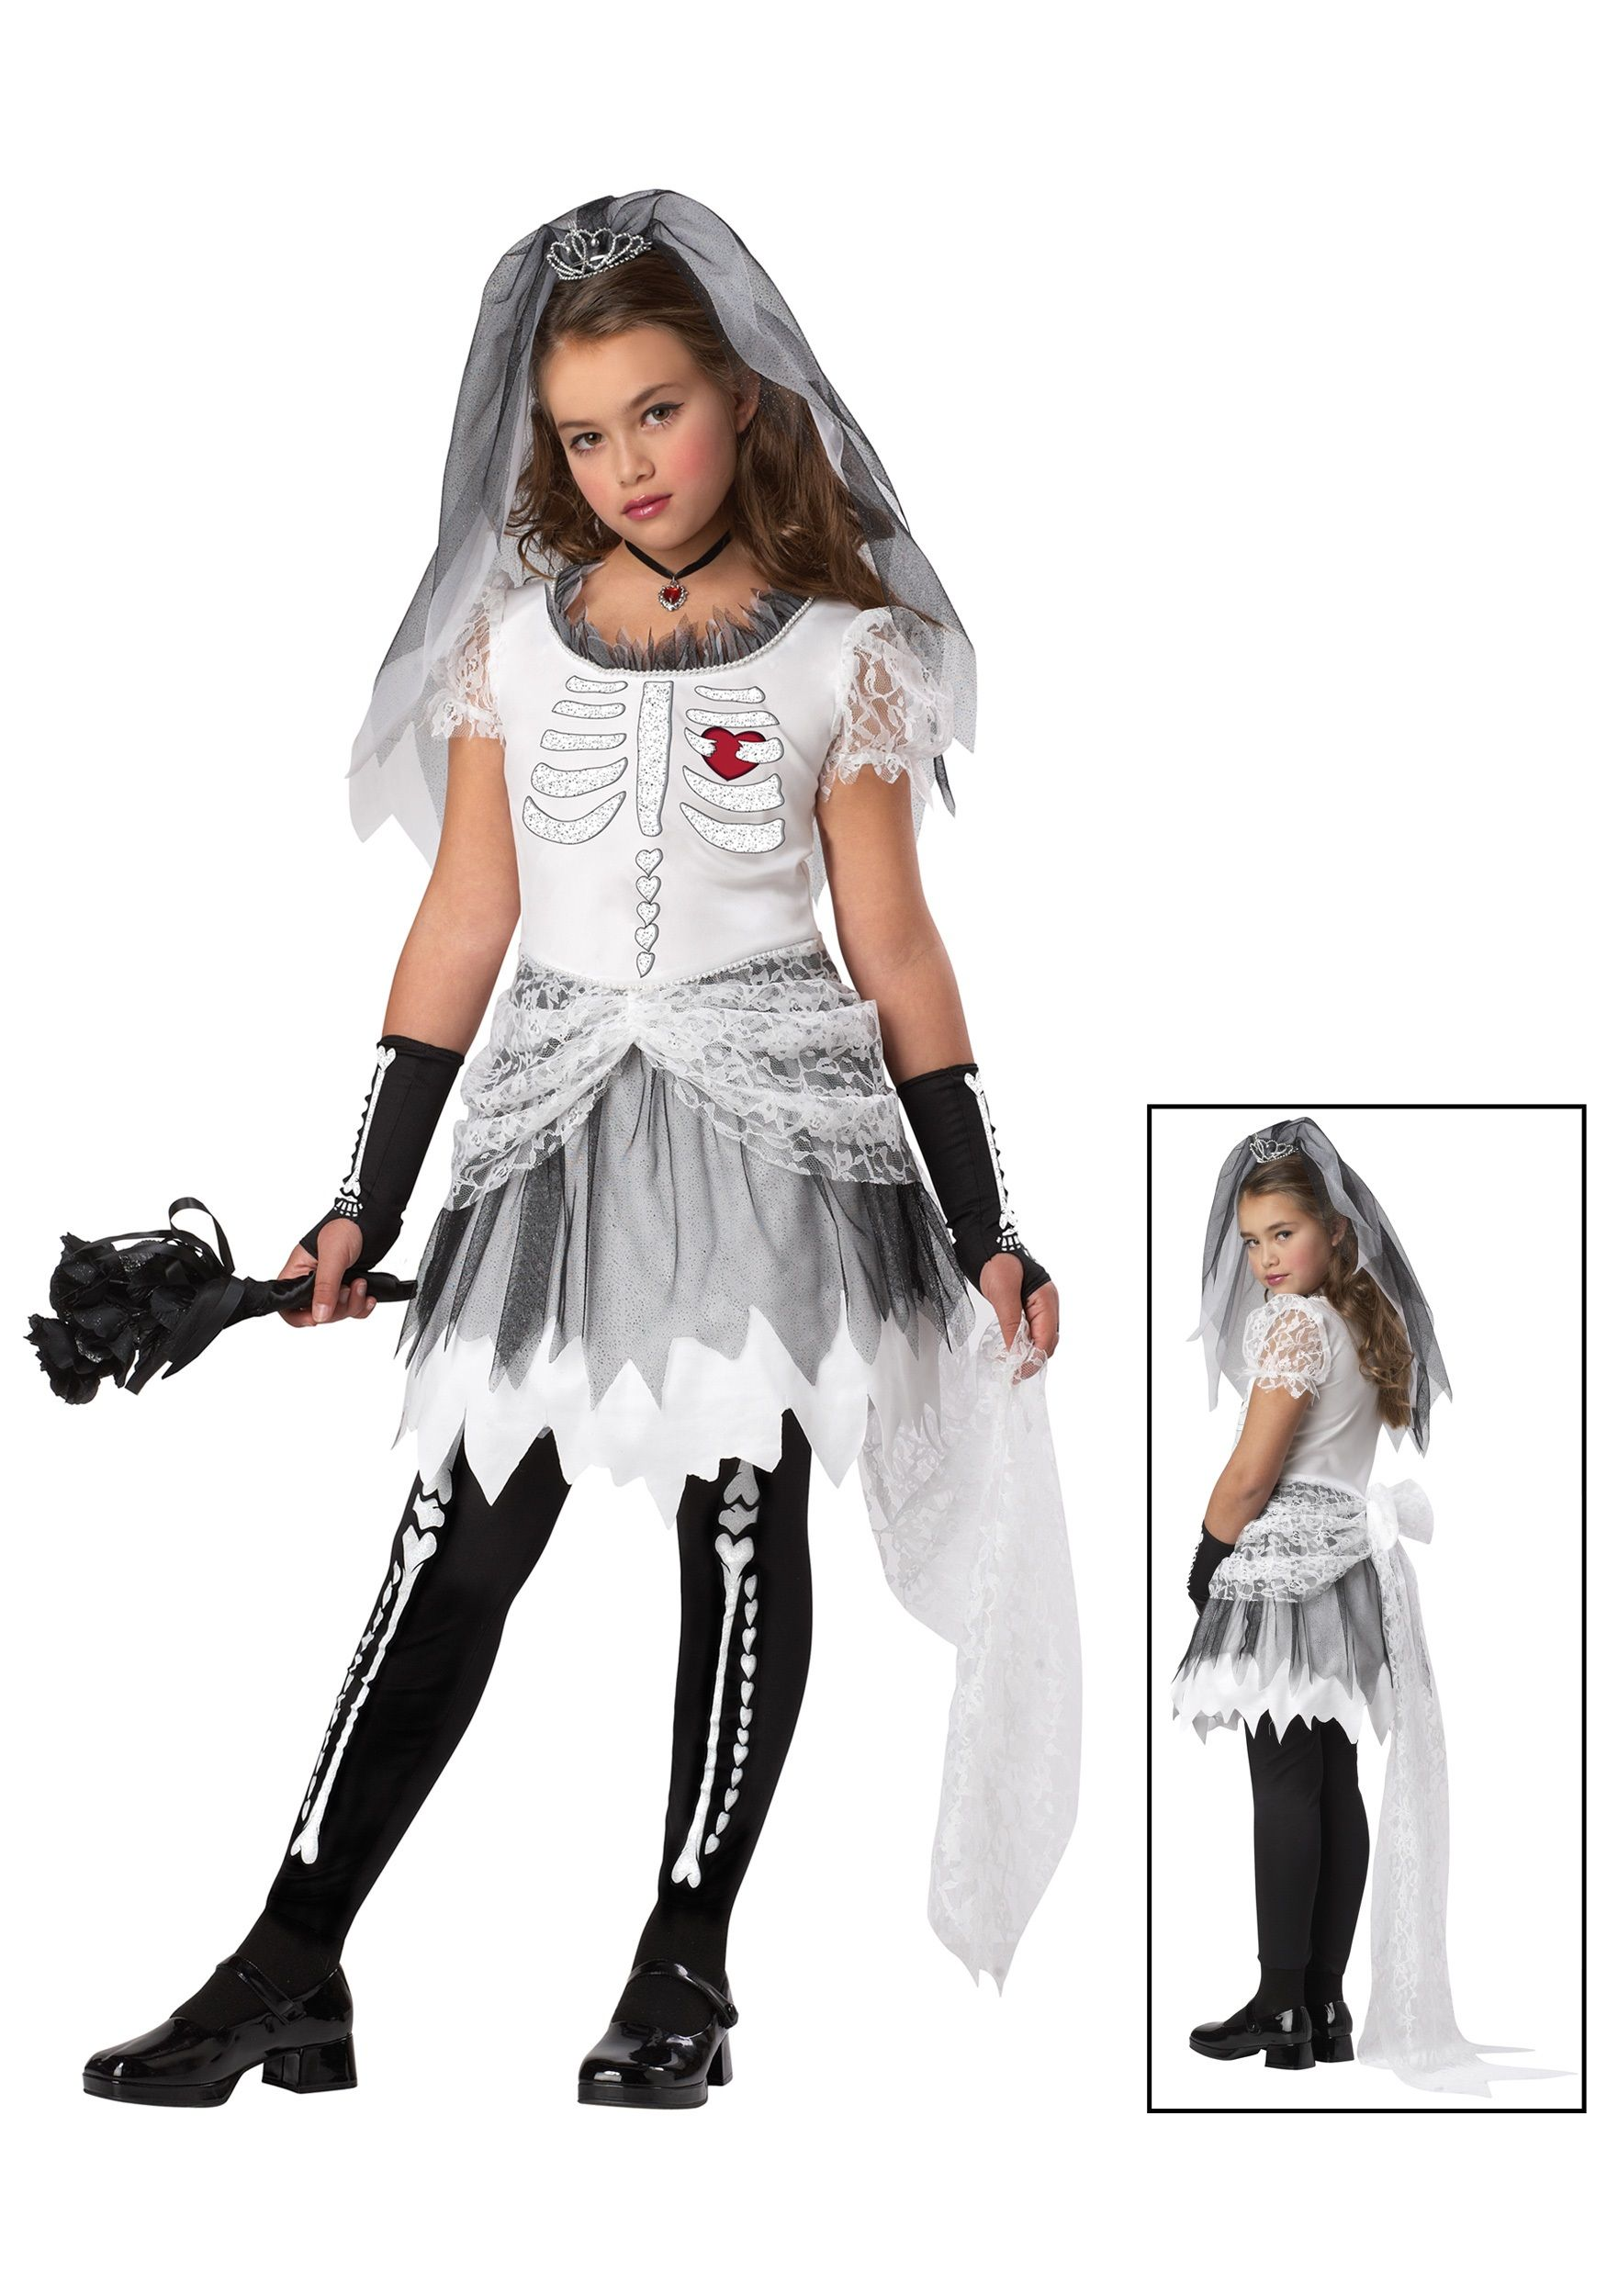 Girls bride halloween costume halloween costumes for Children s halloween costume ideas